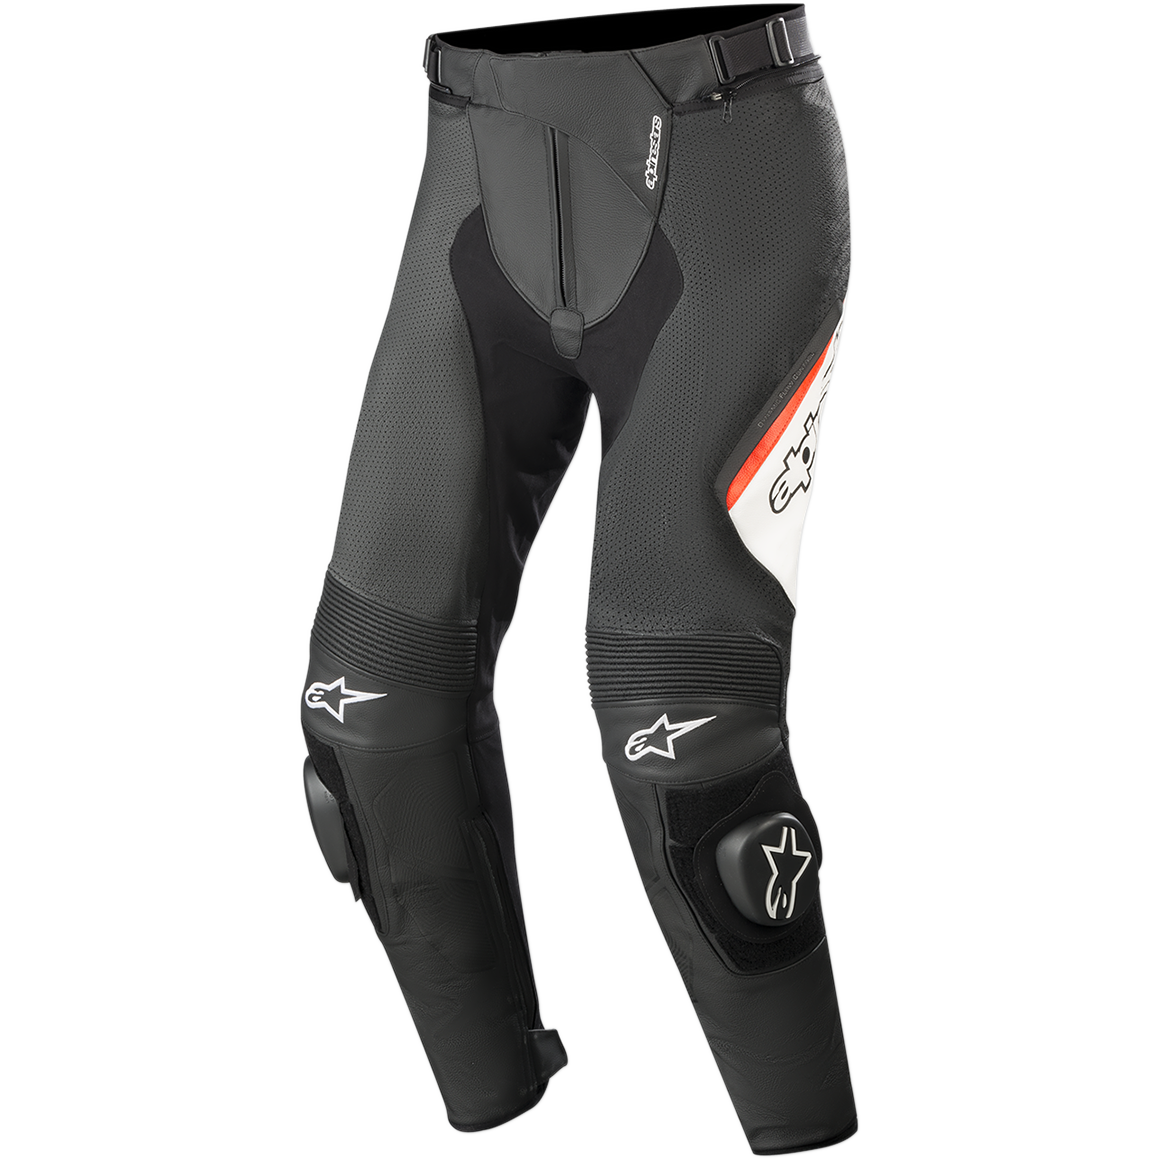 Missile V2 Airflow Pants — Standard Length